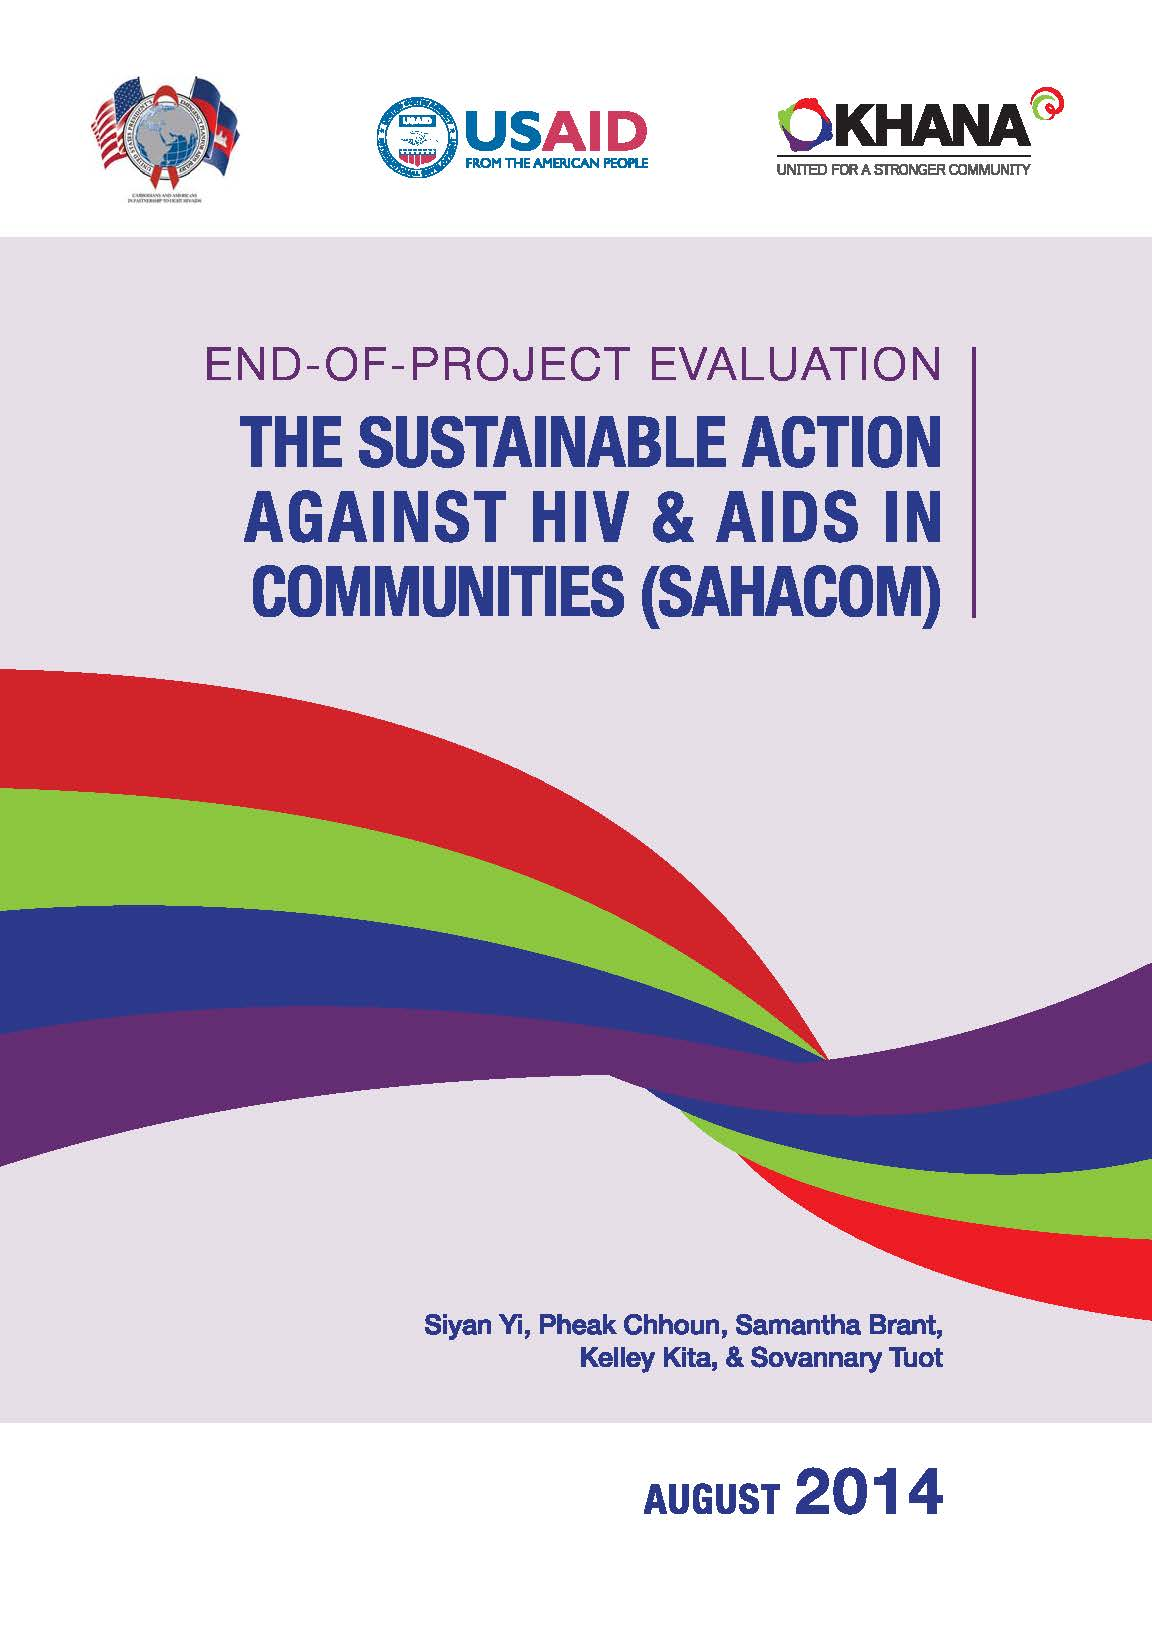 End-of-Project Evaluation: The sustainable action against HIV&AIDS in Communities (SAHACOM)